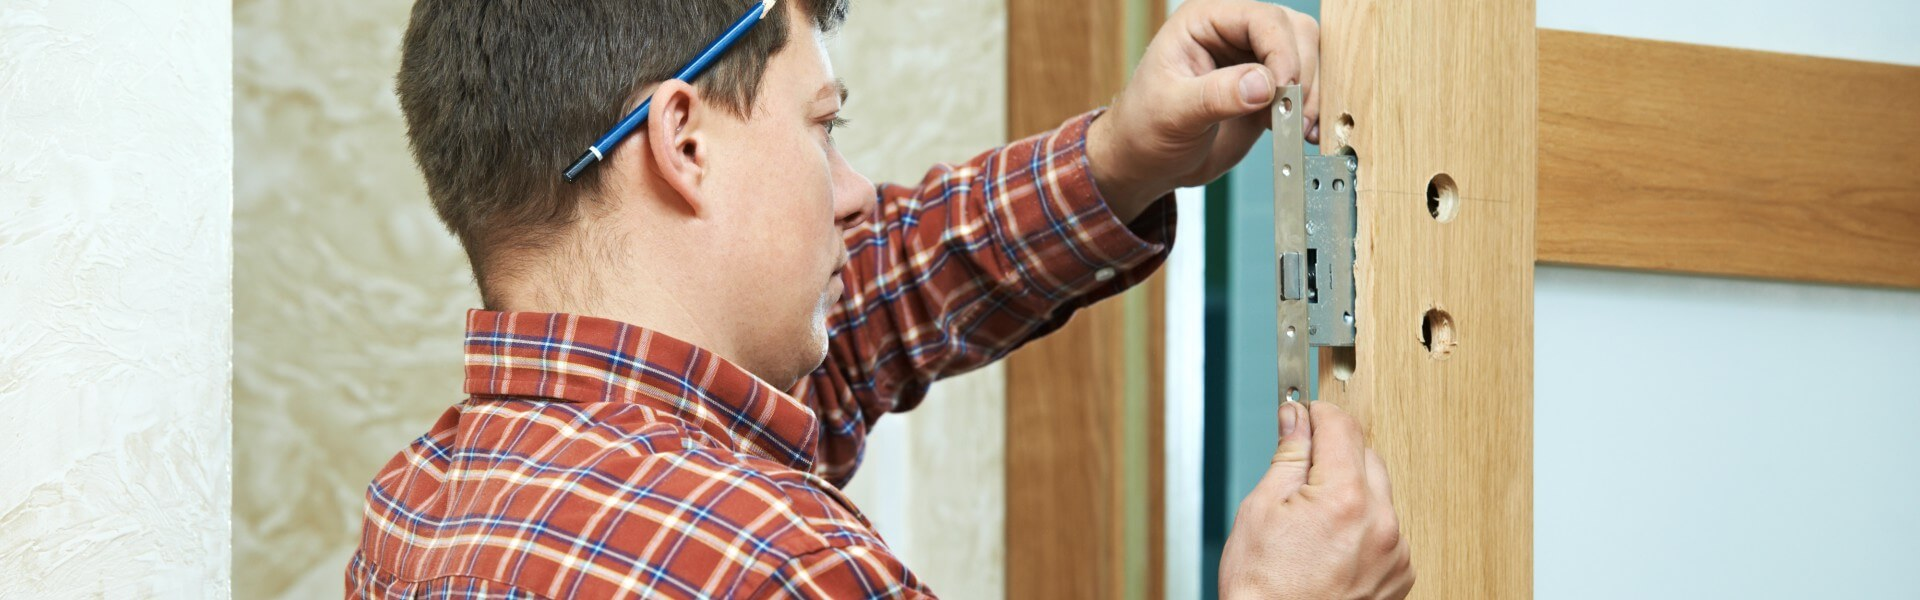 Georgetown Locksmith Pros - Mortise Locks Services